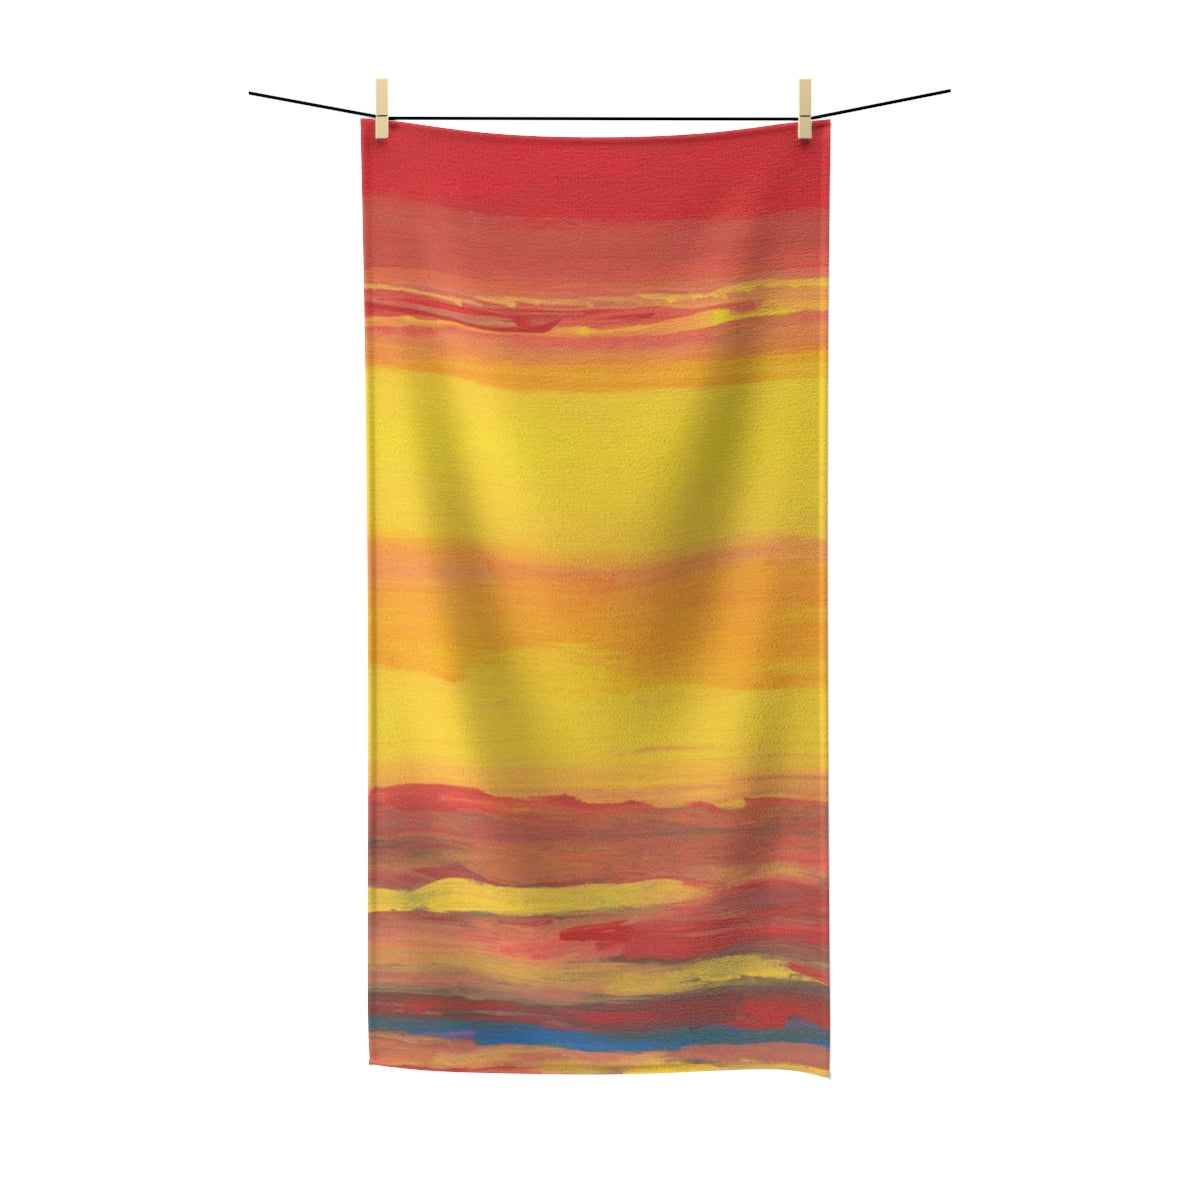 "SUNRISE SUNSUN Polycotton Towel  36"" x 72"""